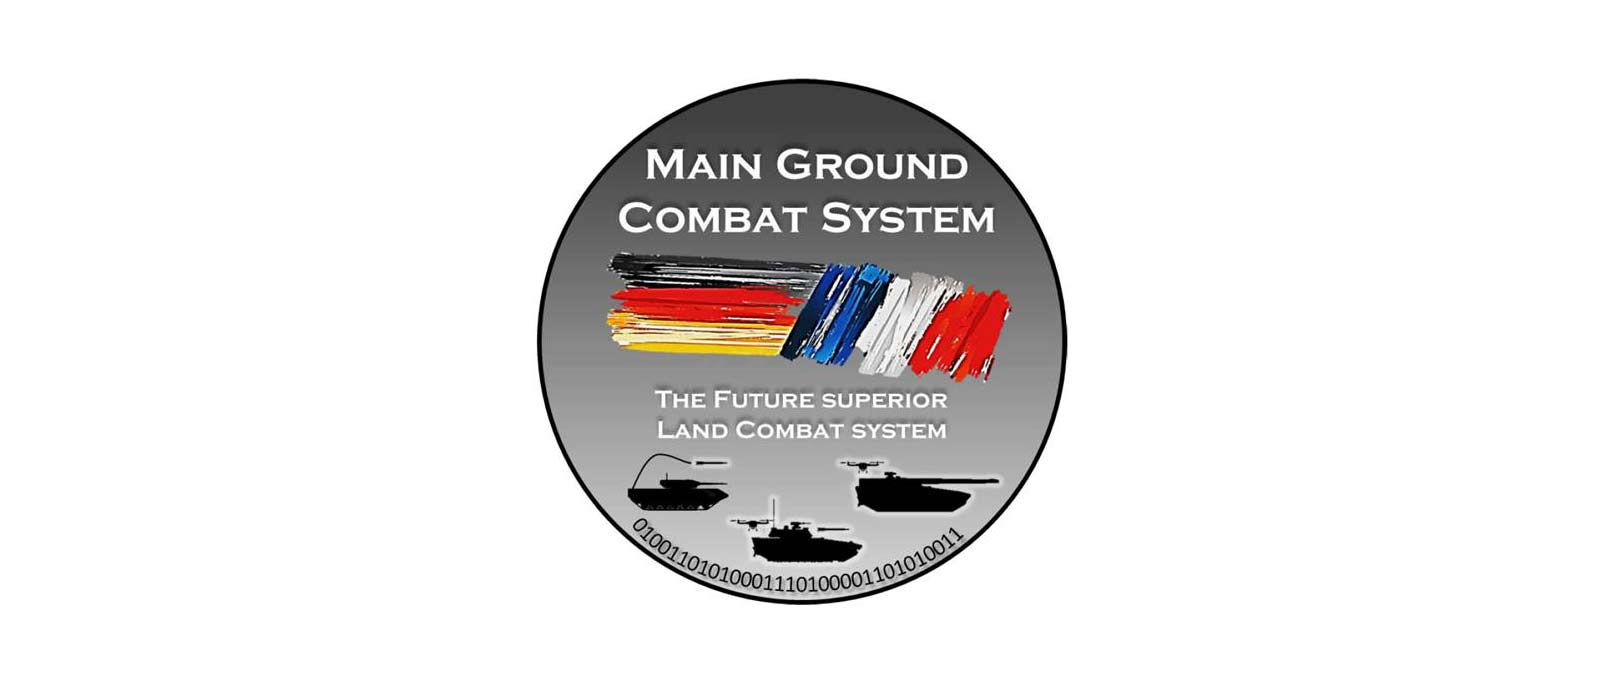 MGCS_Main-Ground-Combat-System-KMW-News-Stage